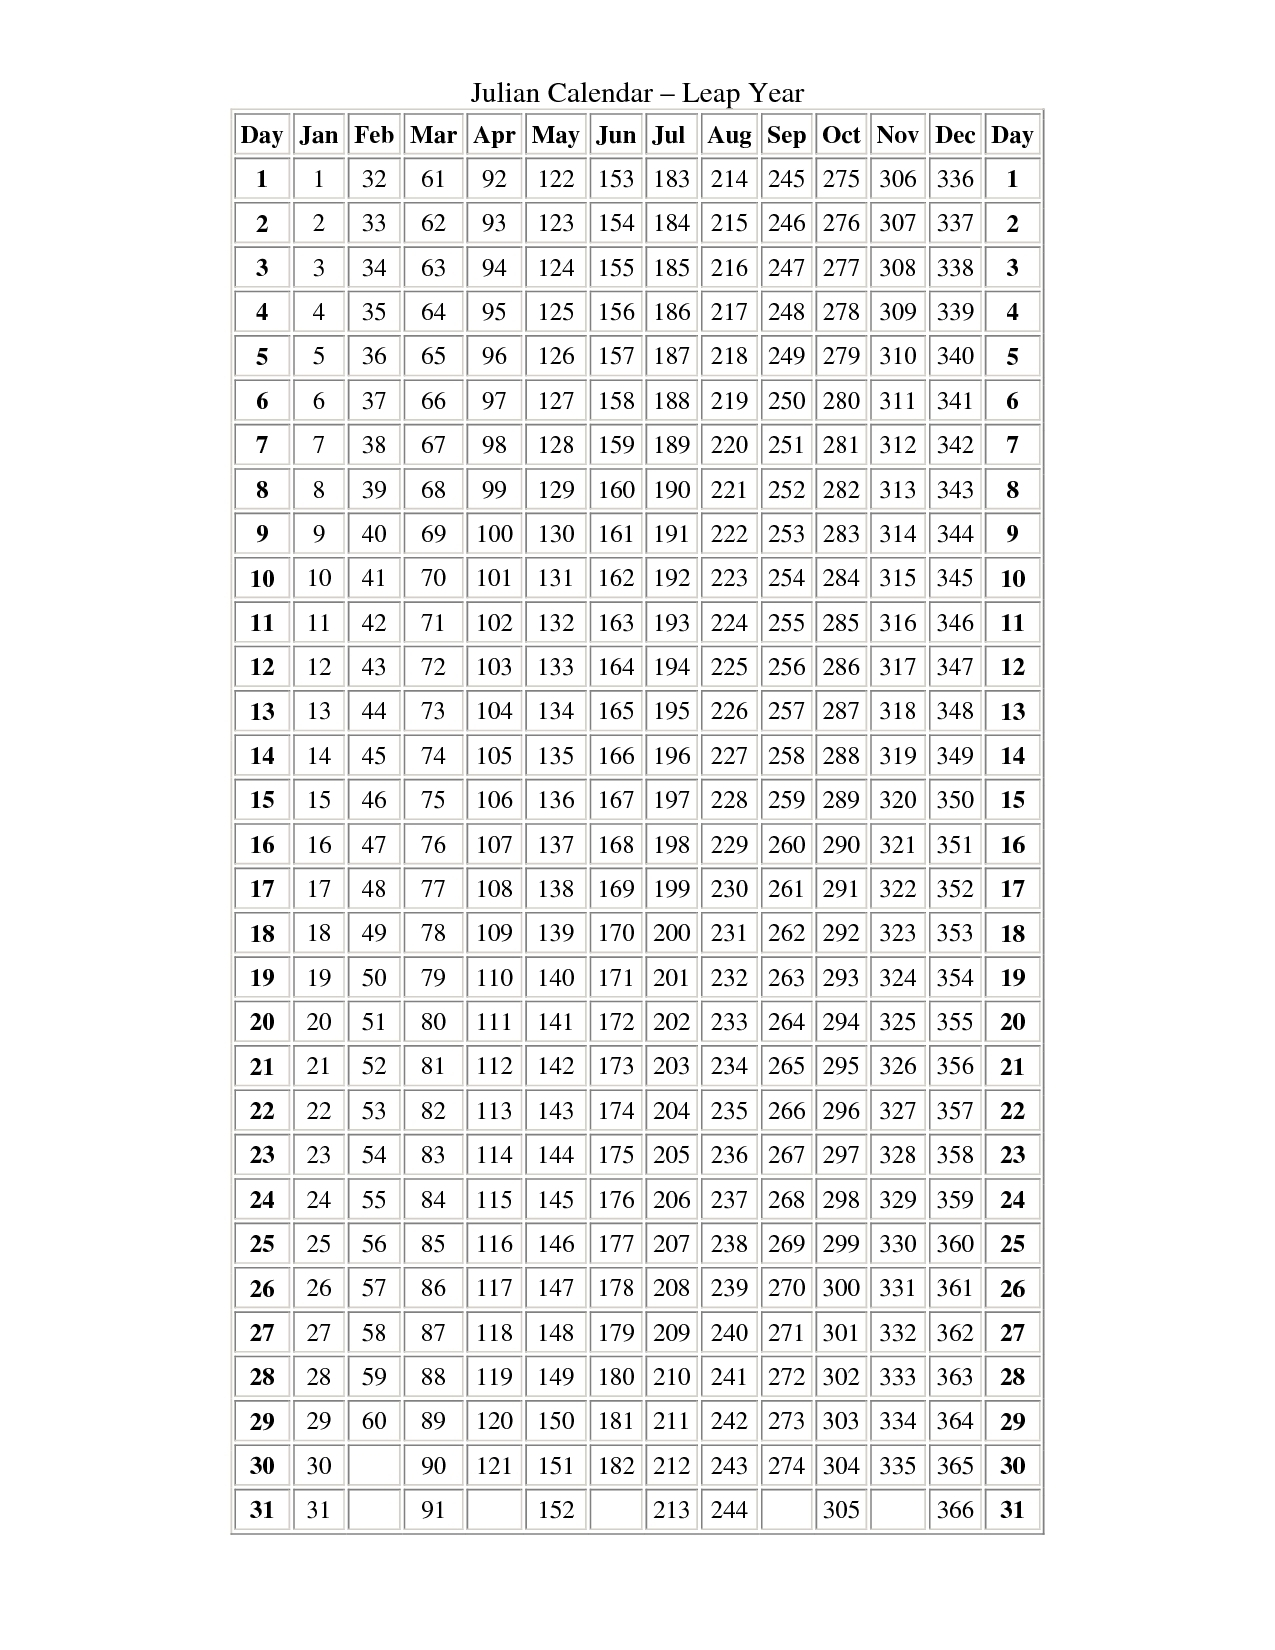 Julian Date Calender For Leap Years Printable  Calendar regarding Leap Year Julian Calendar